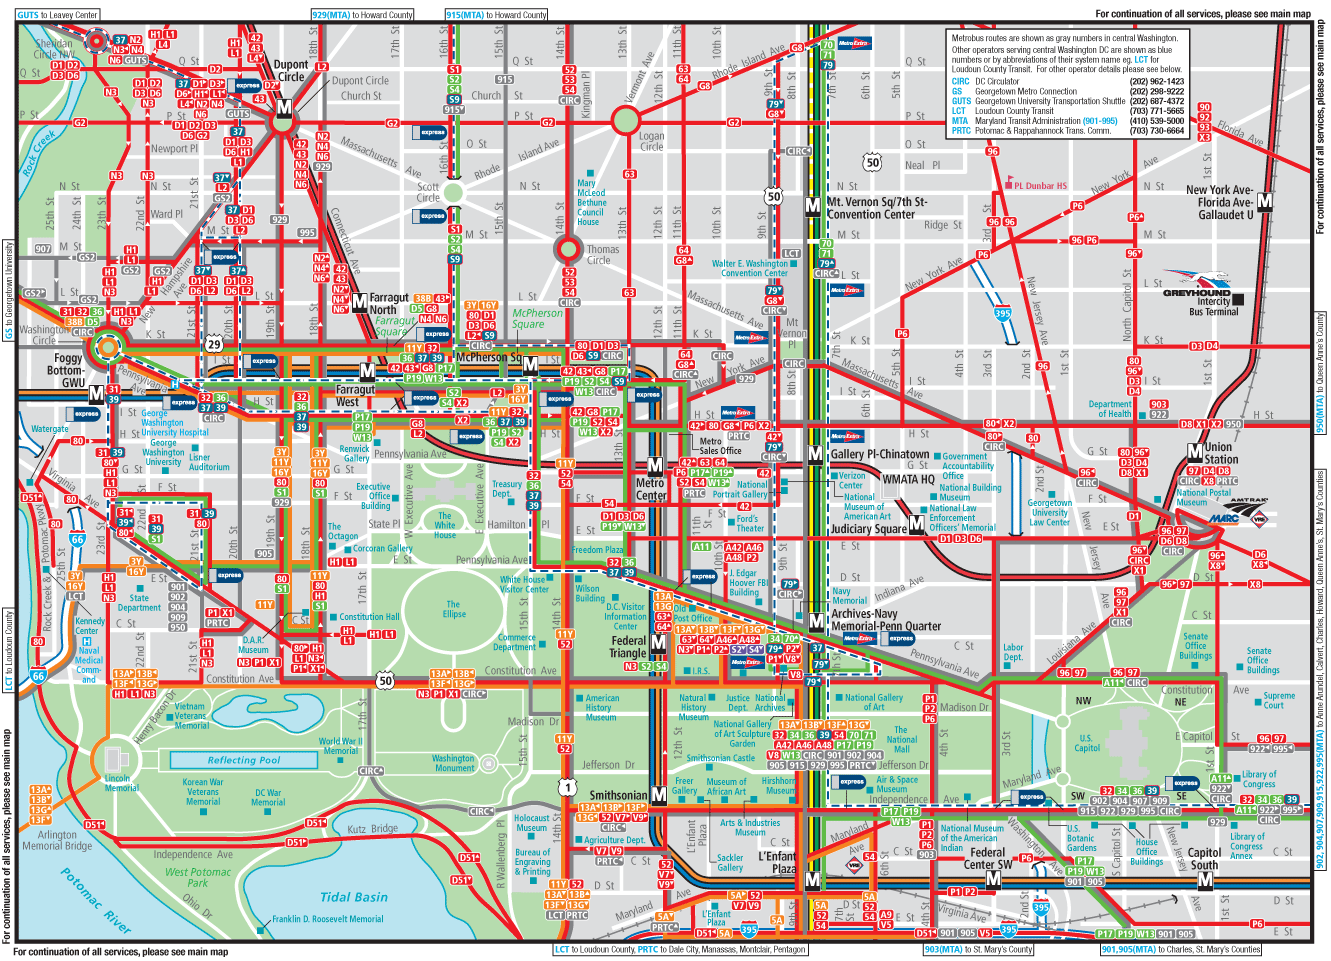 Washington Dc Downtown Metrobus Map city Center Mapsofnet